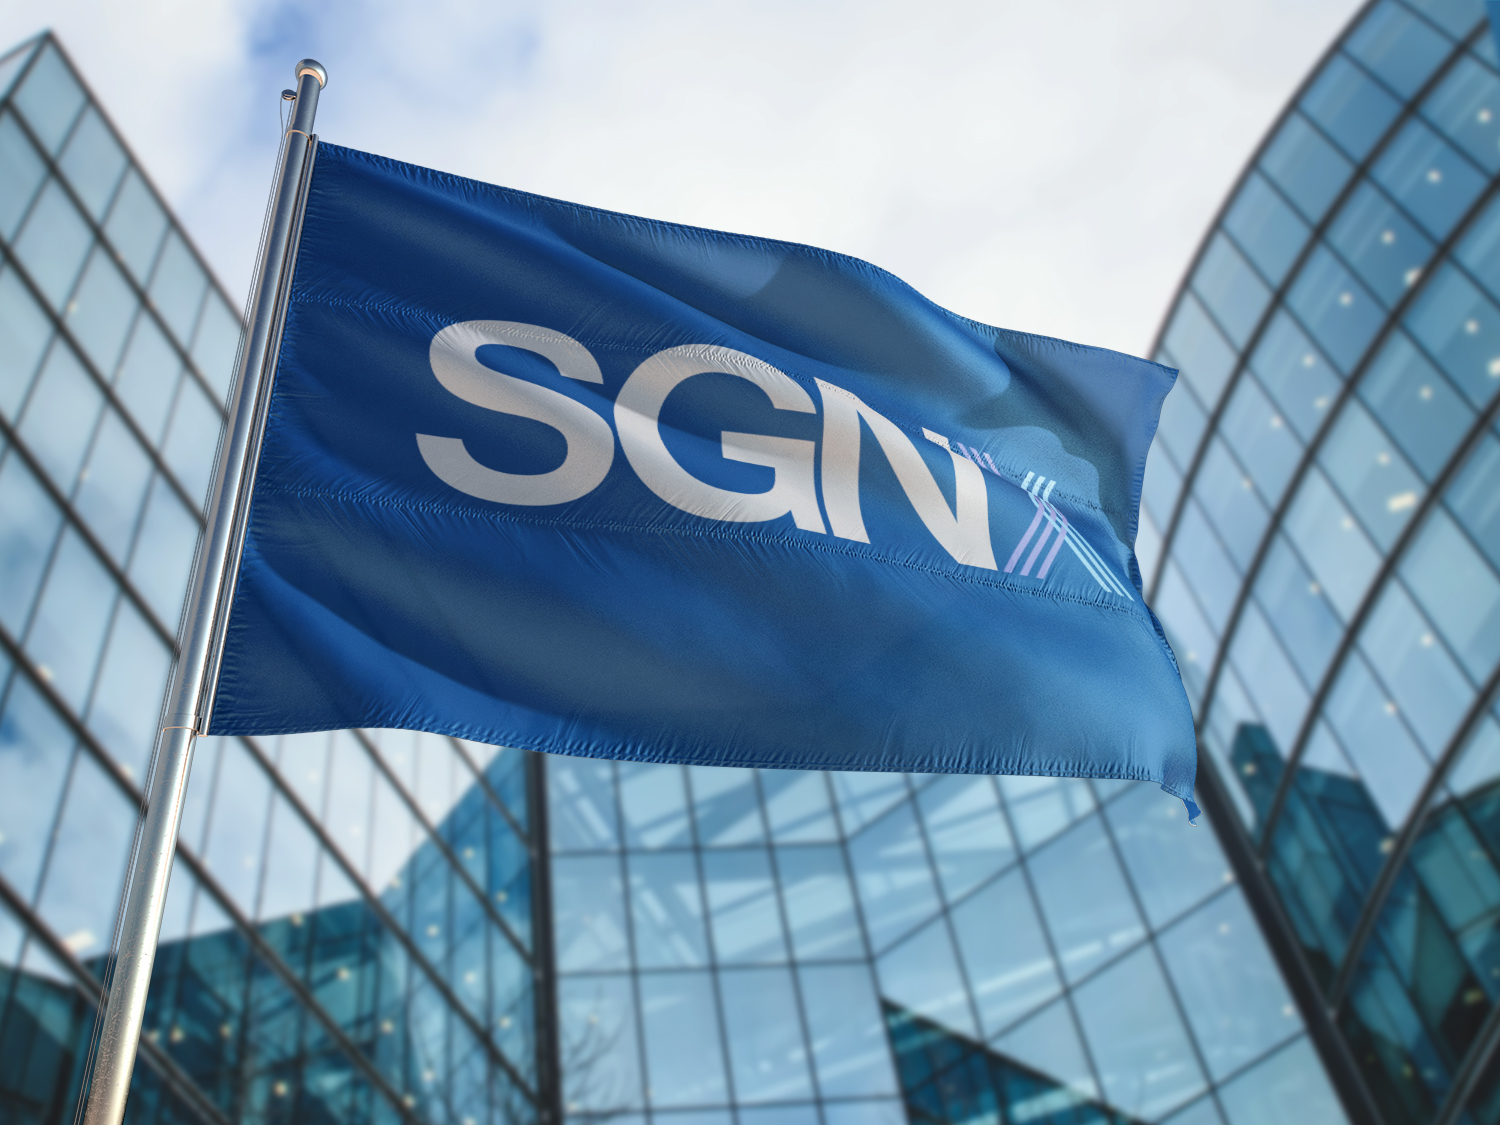 SGNX blue flag with building on the background